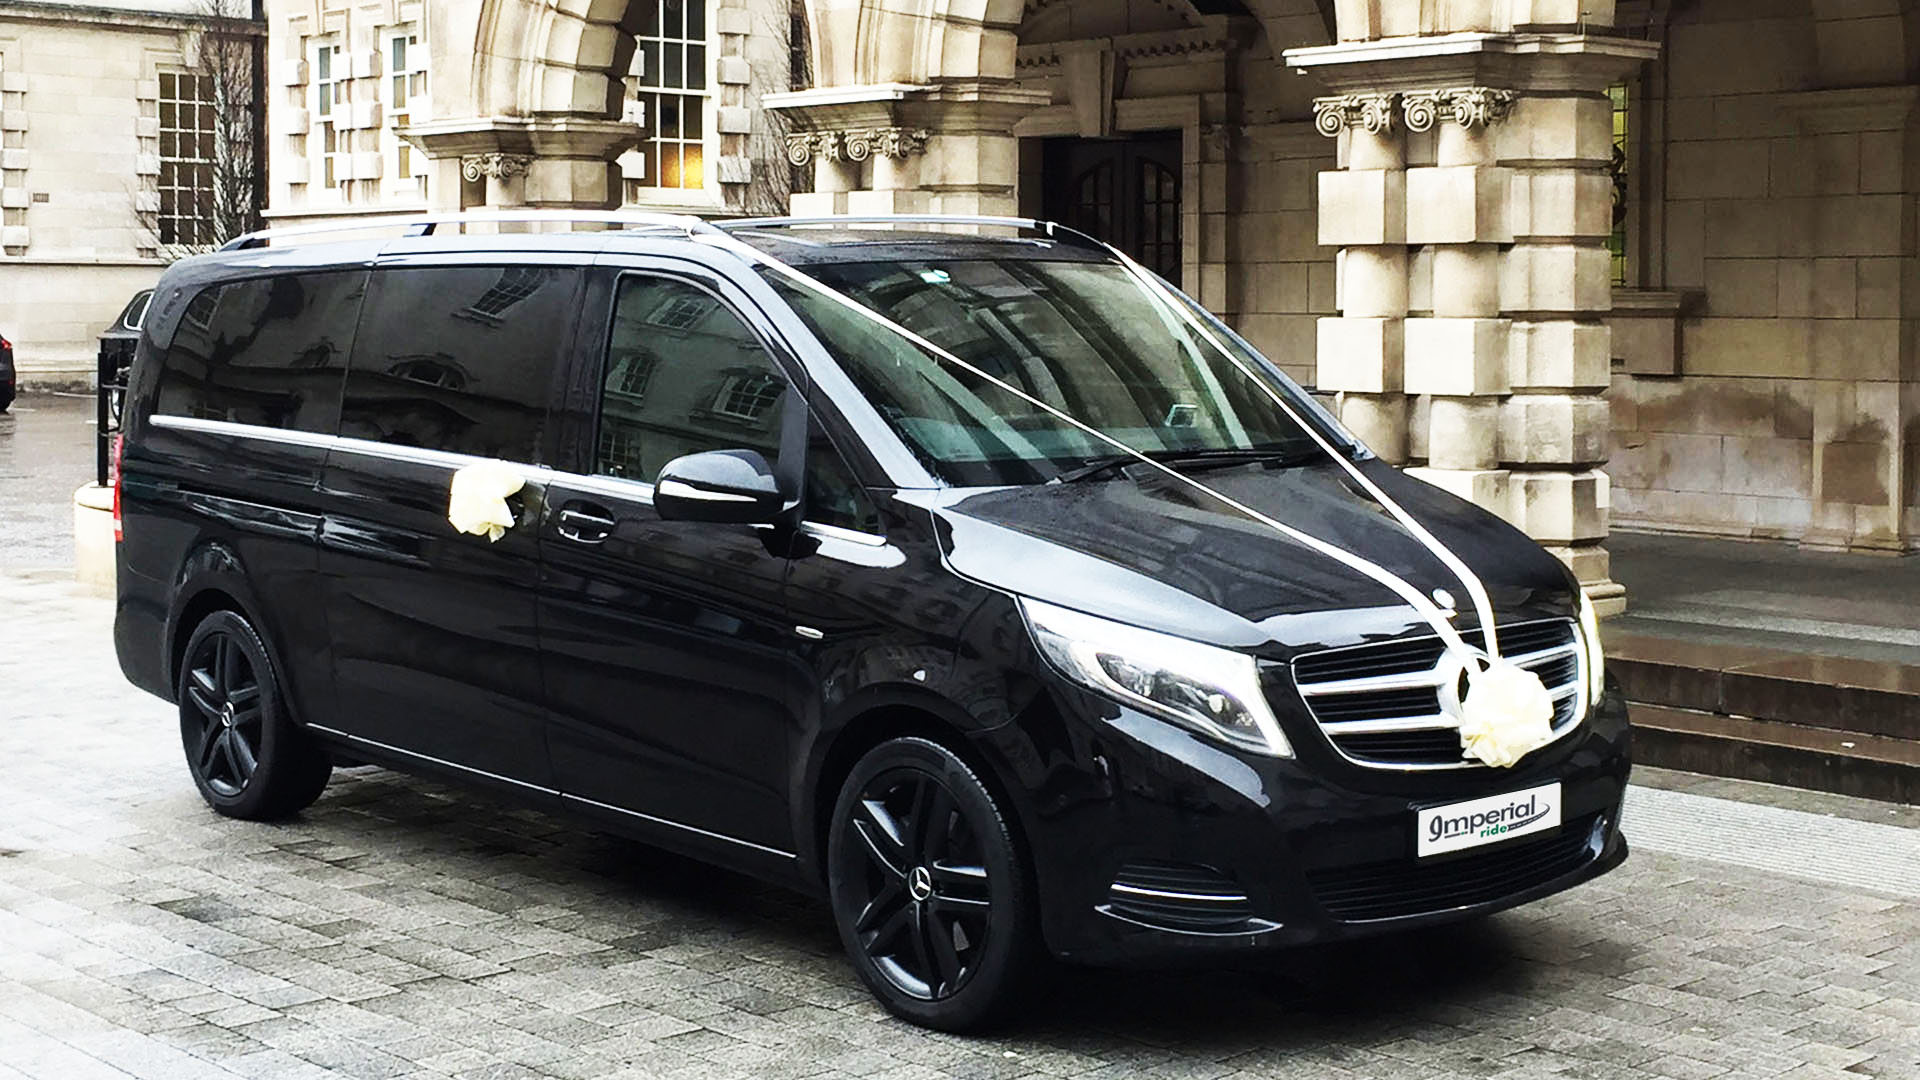 v-class-wedding-hire-in-hounslow